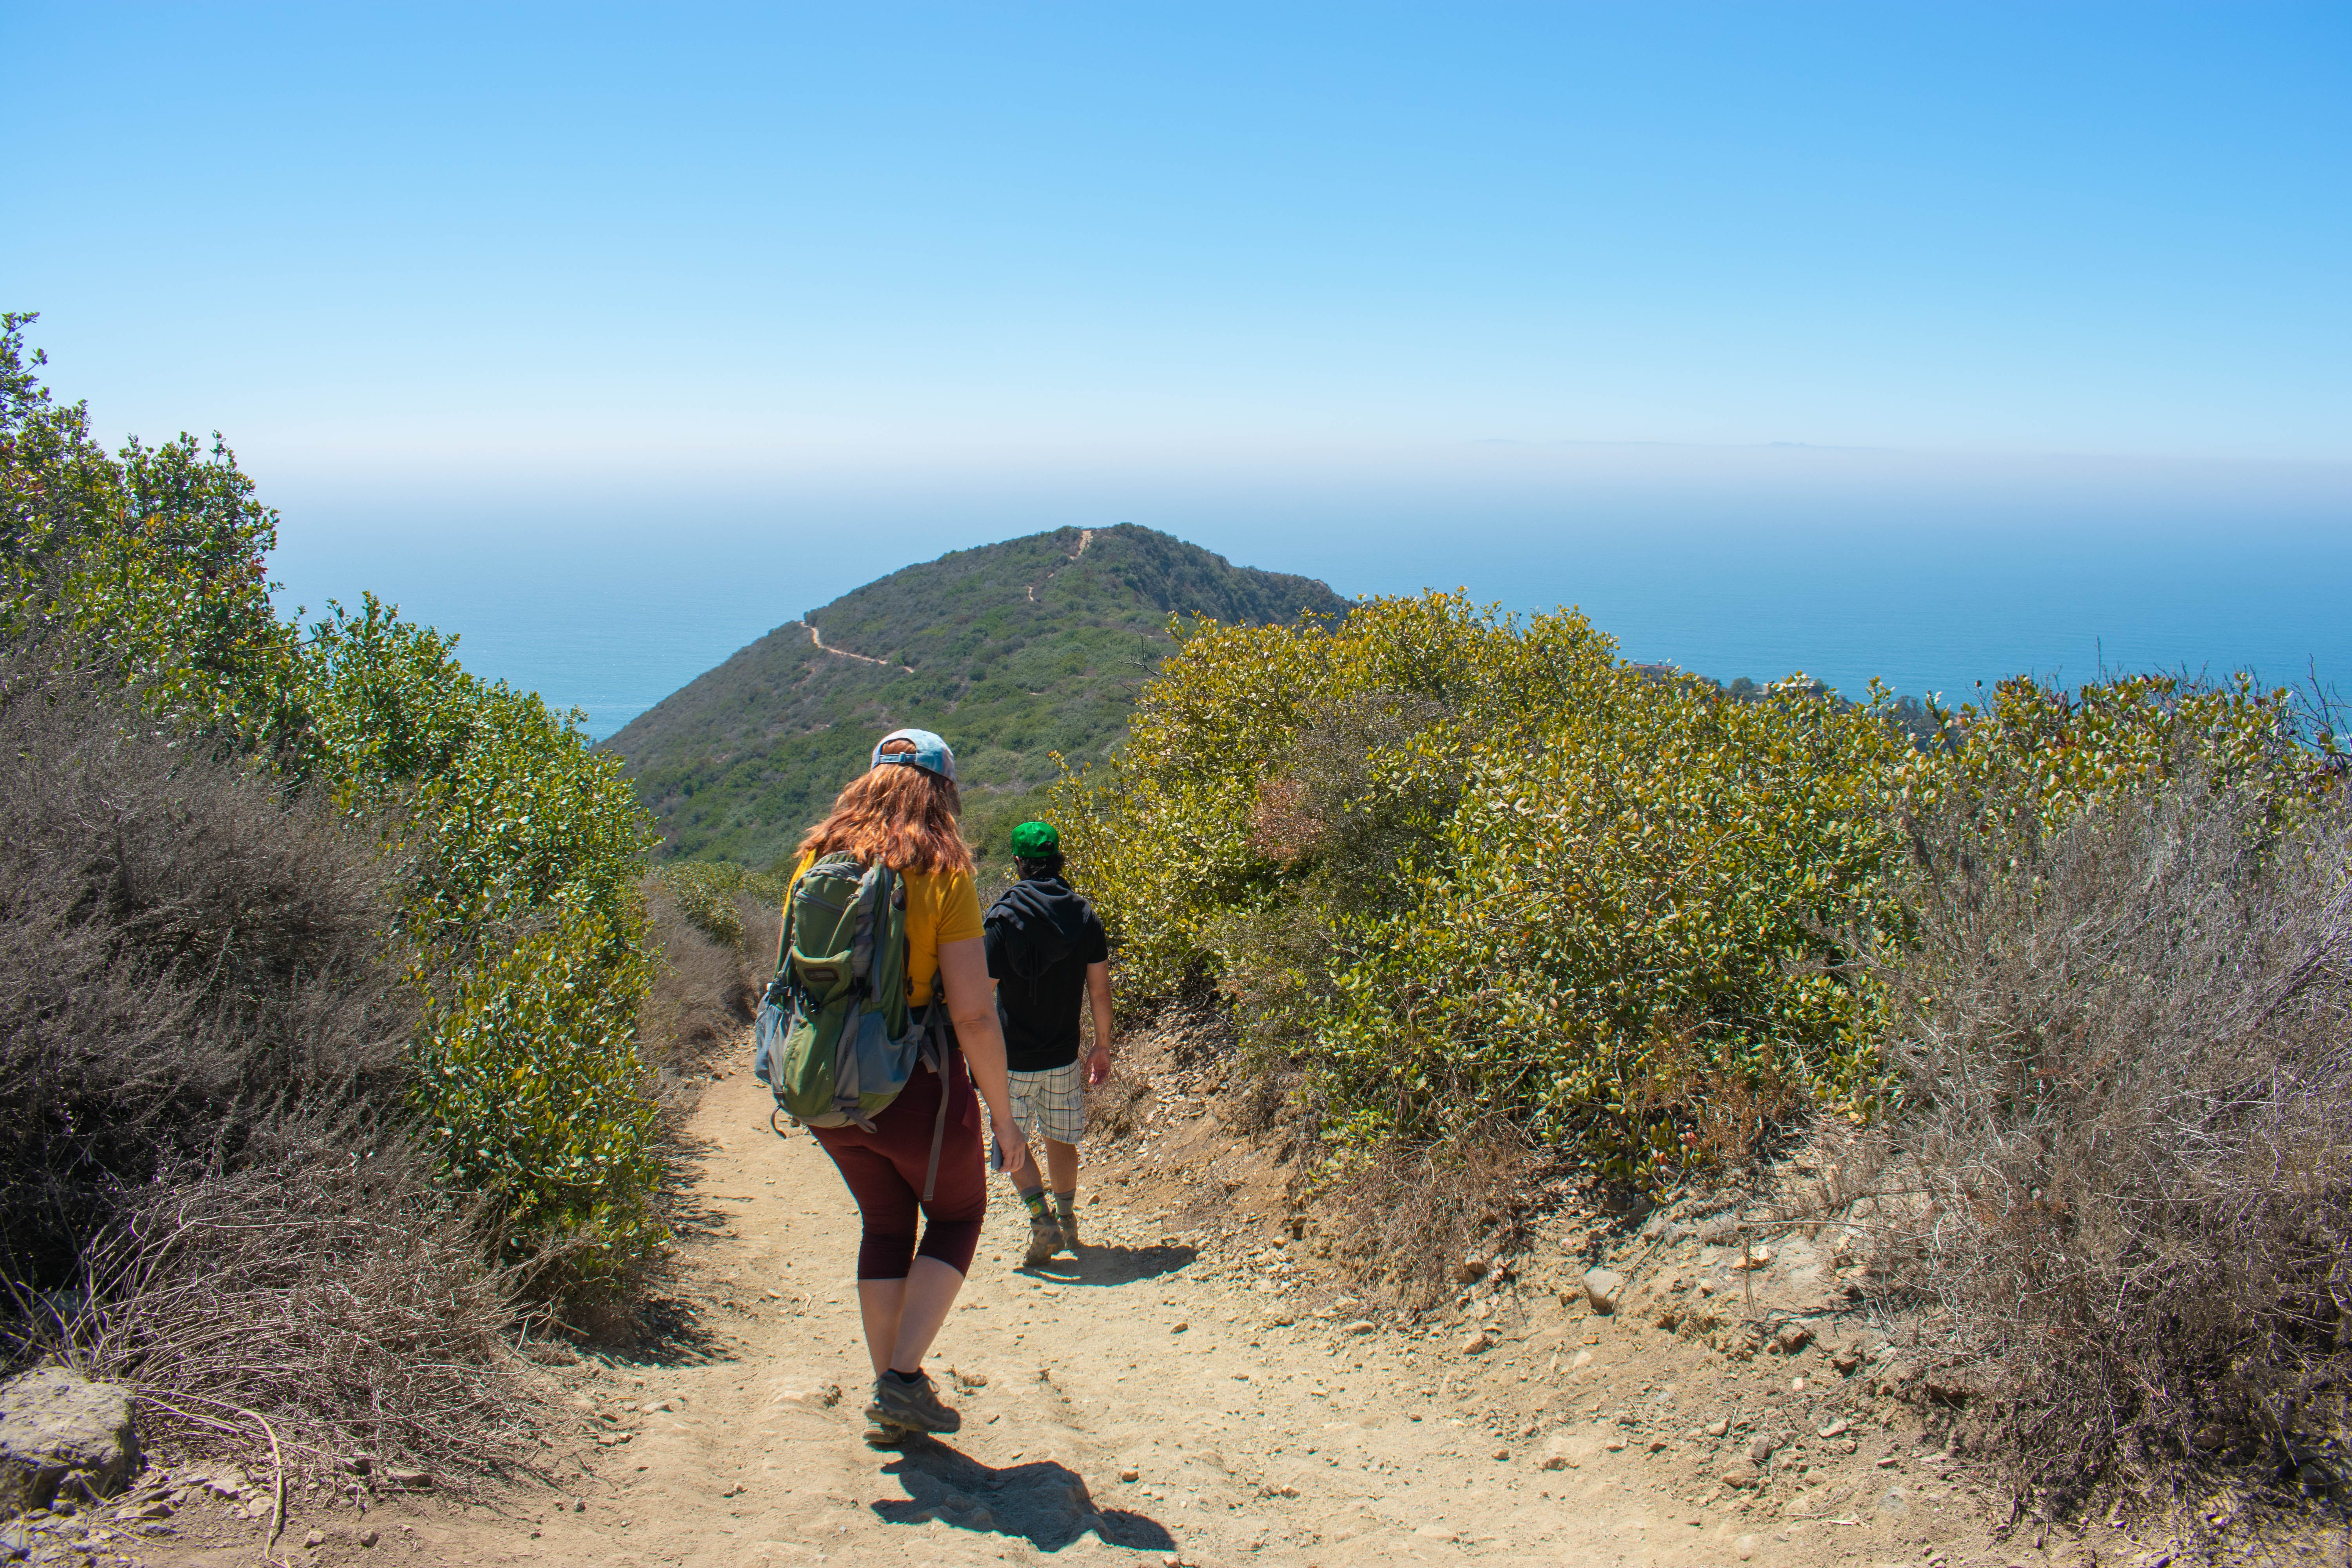 Hikers going down to Coast Royale Beach in Orange County